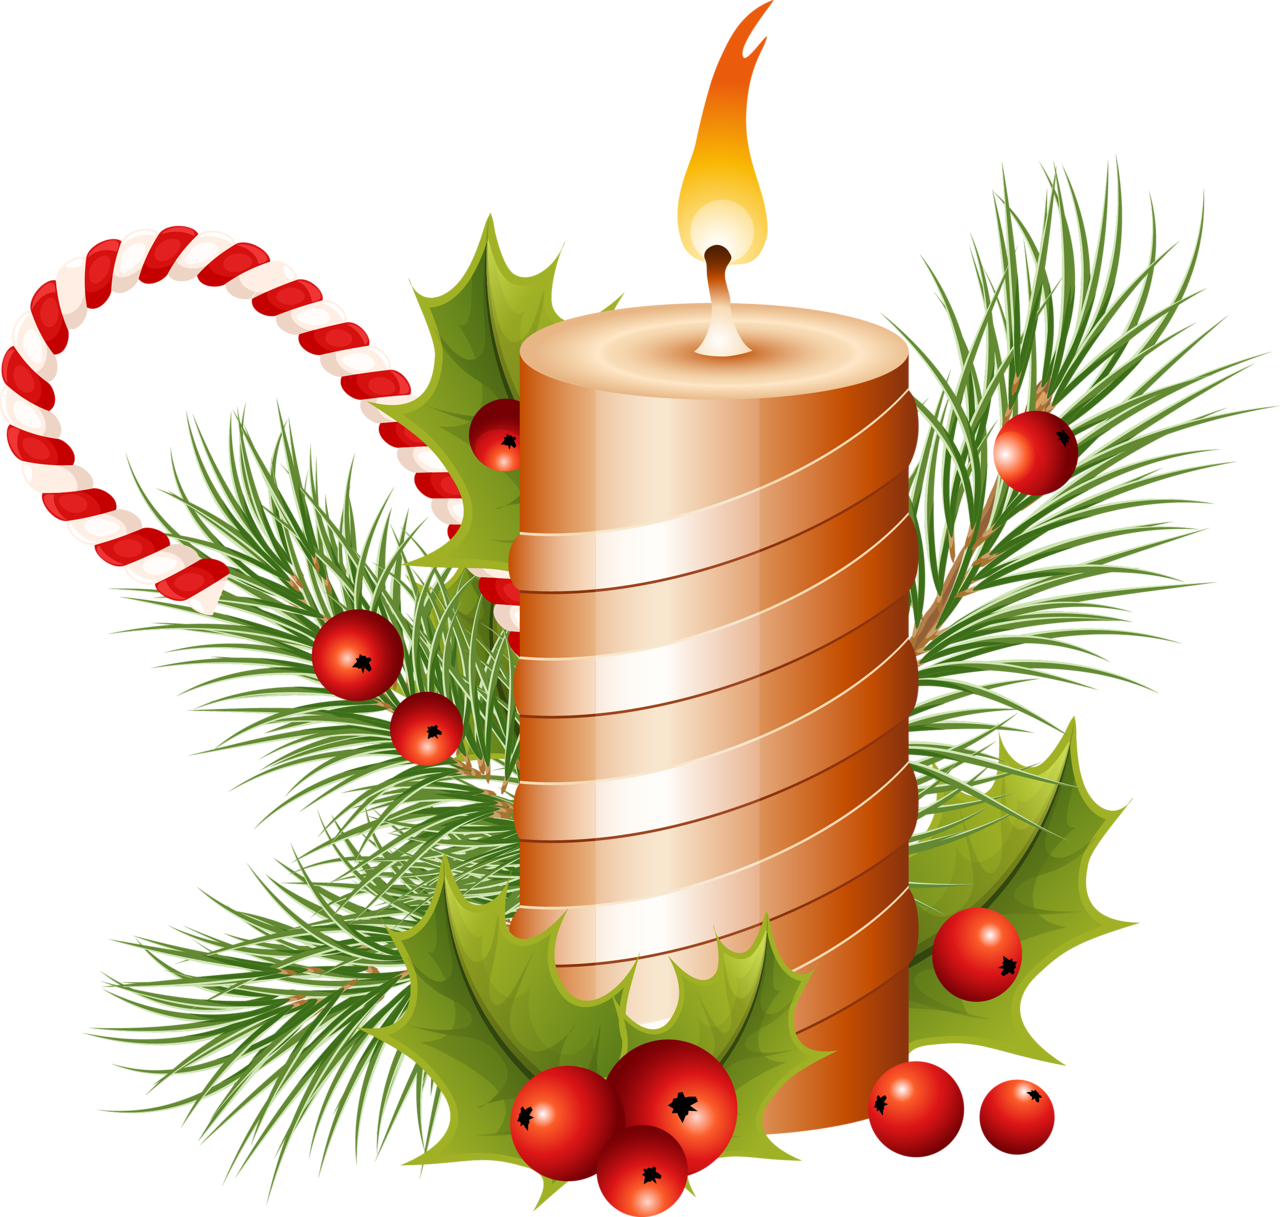 Christmas candle PNG image - Candle PNG